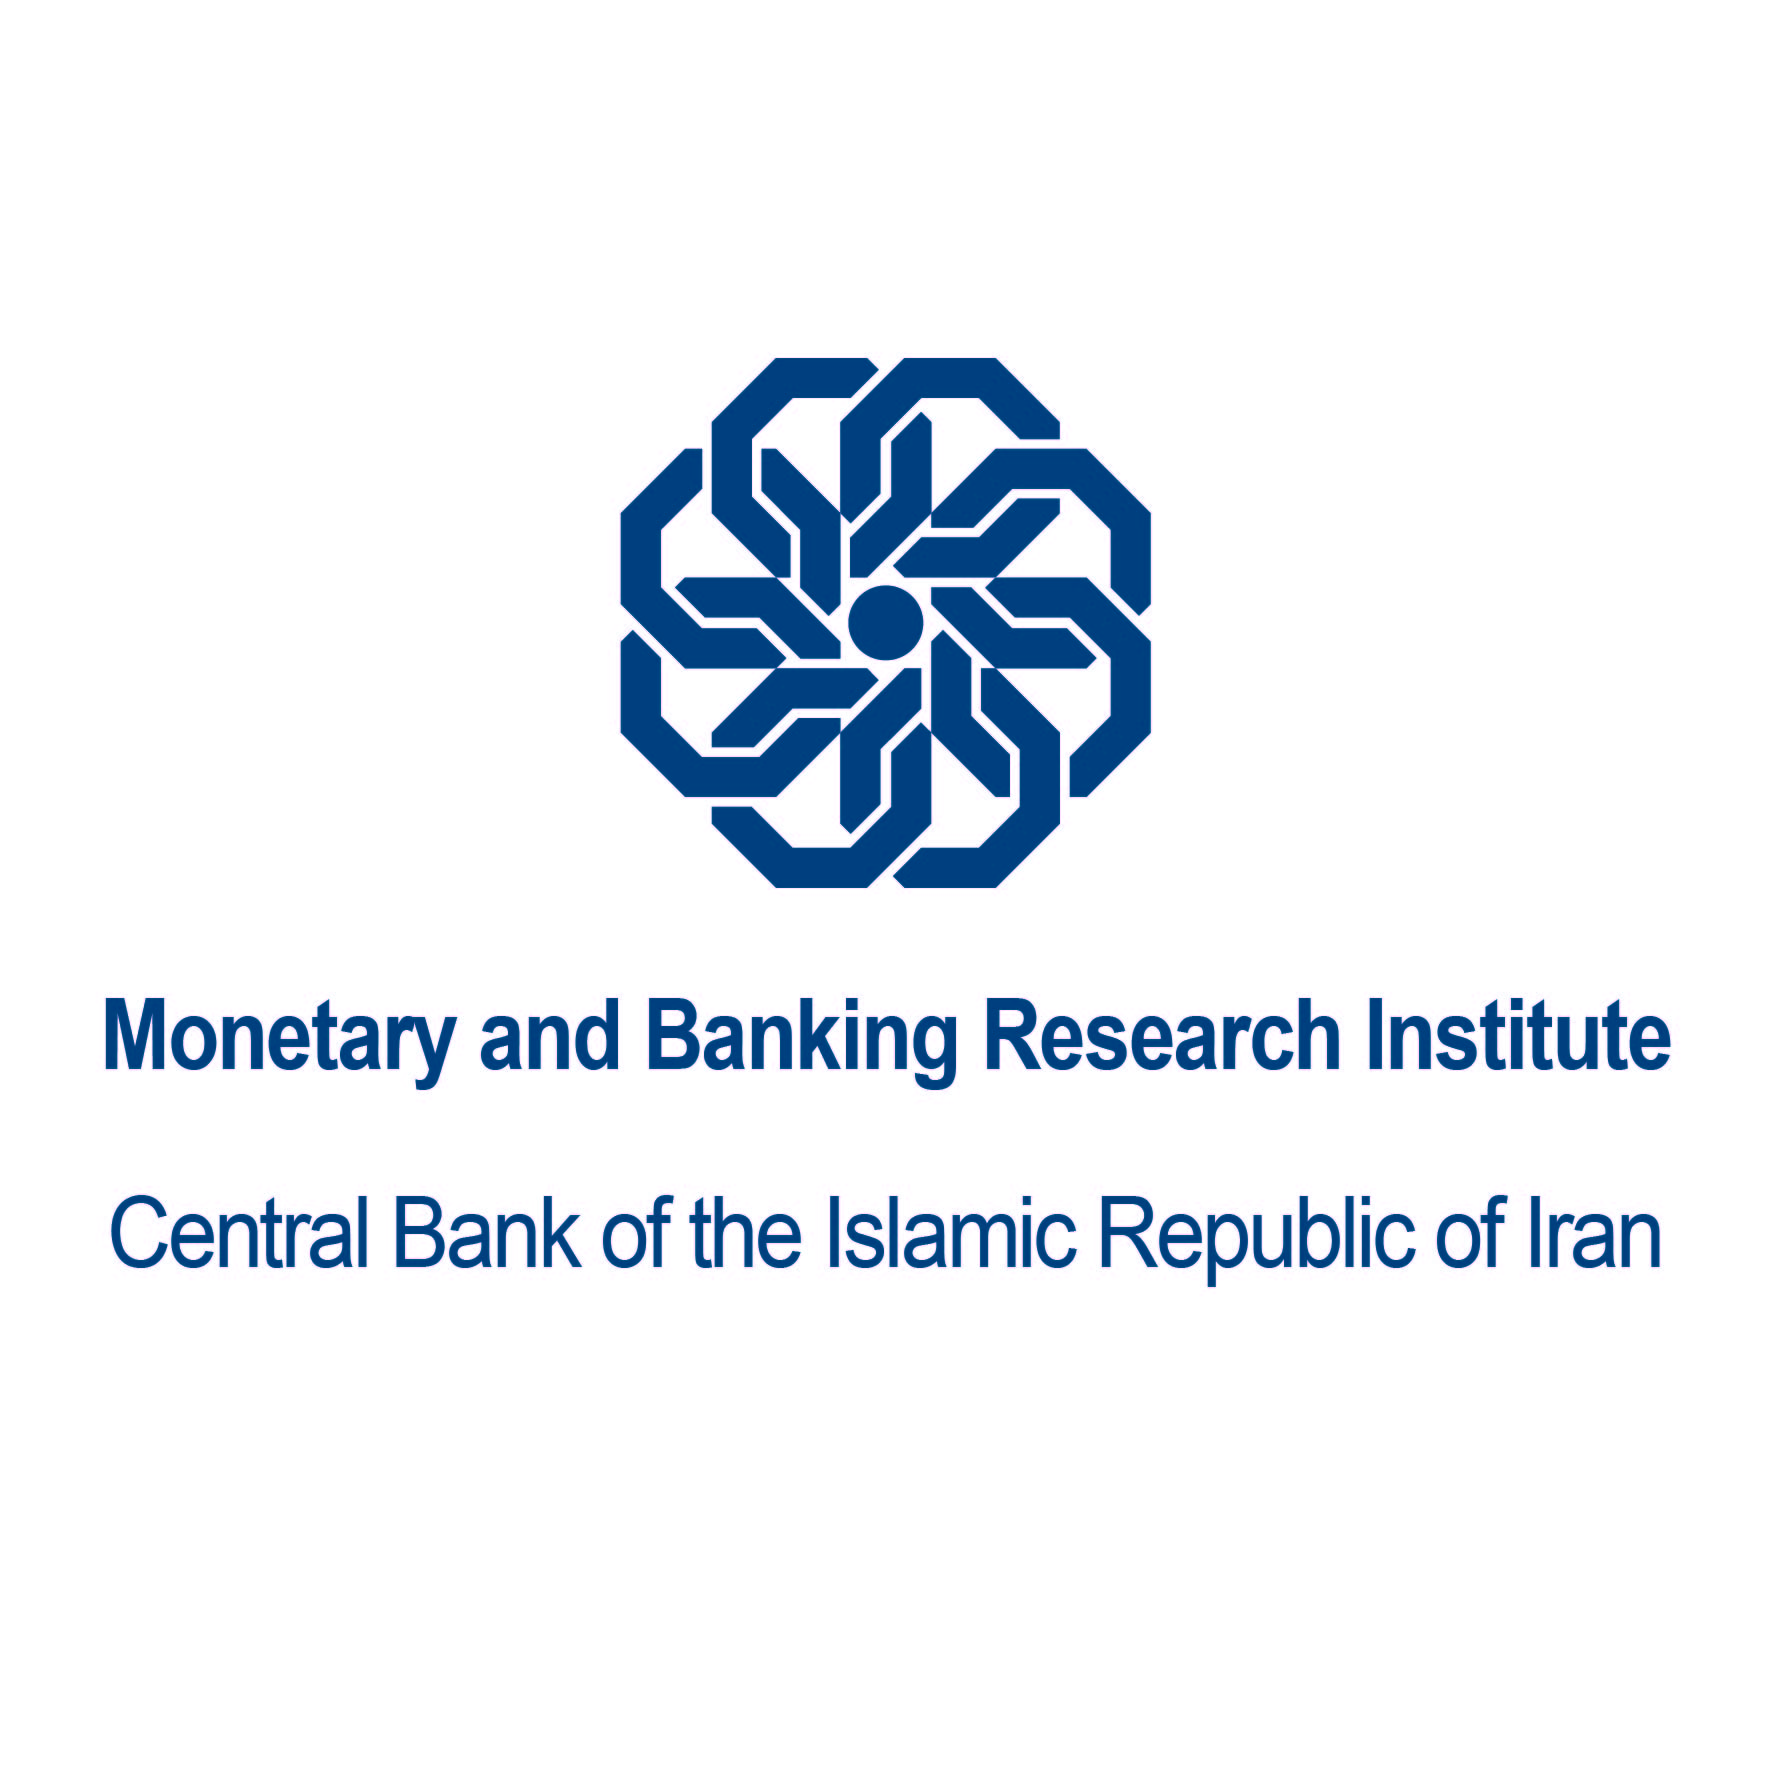 Monetary and Banking Research institute, Iran